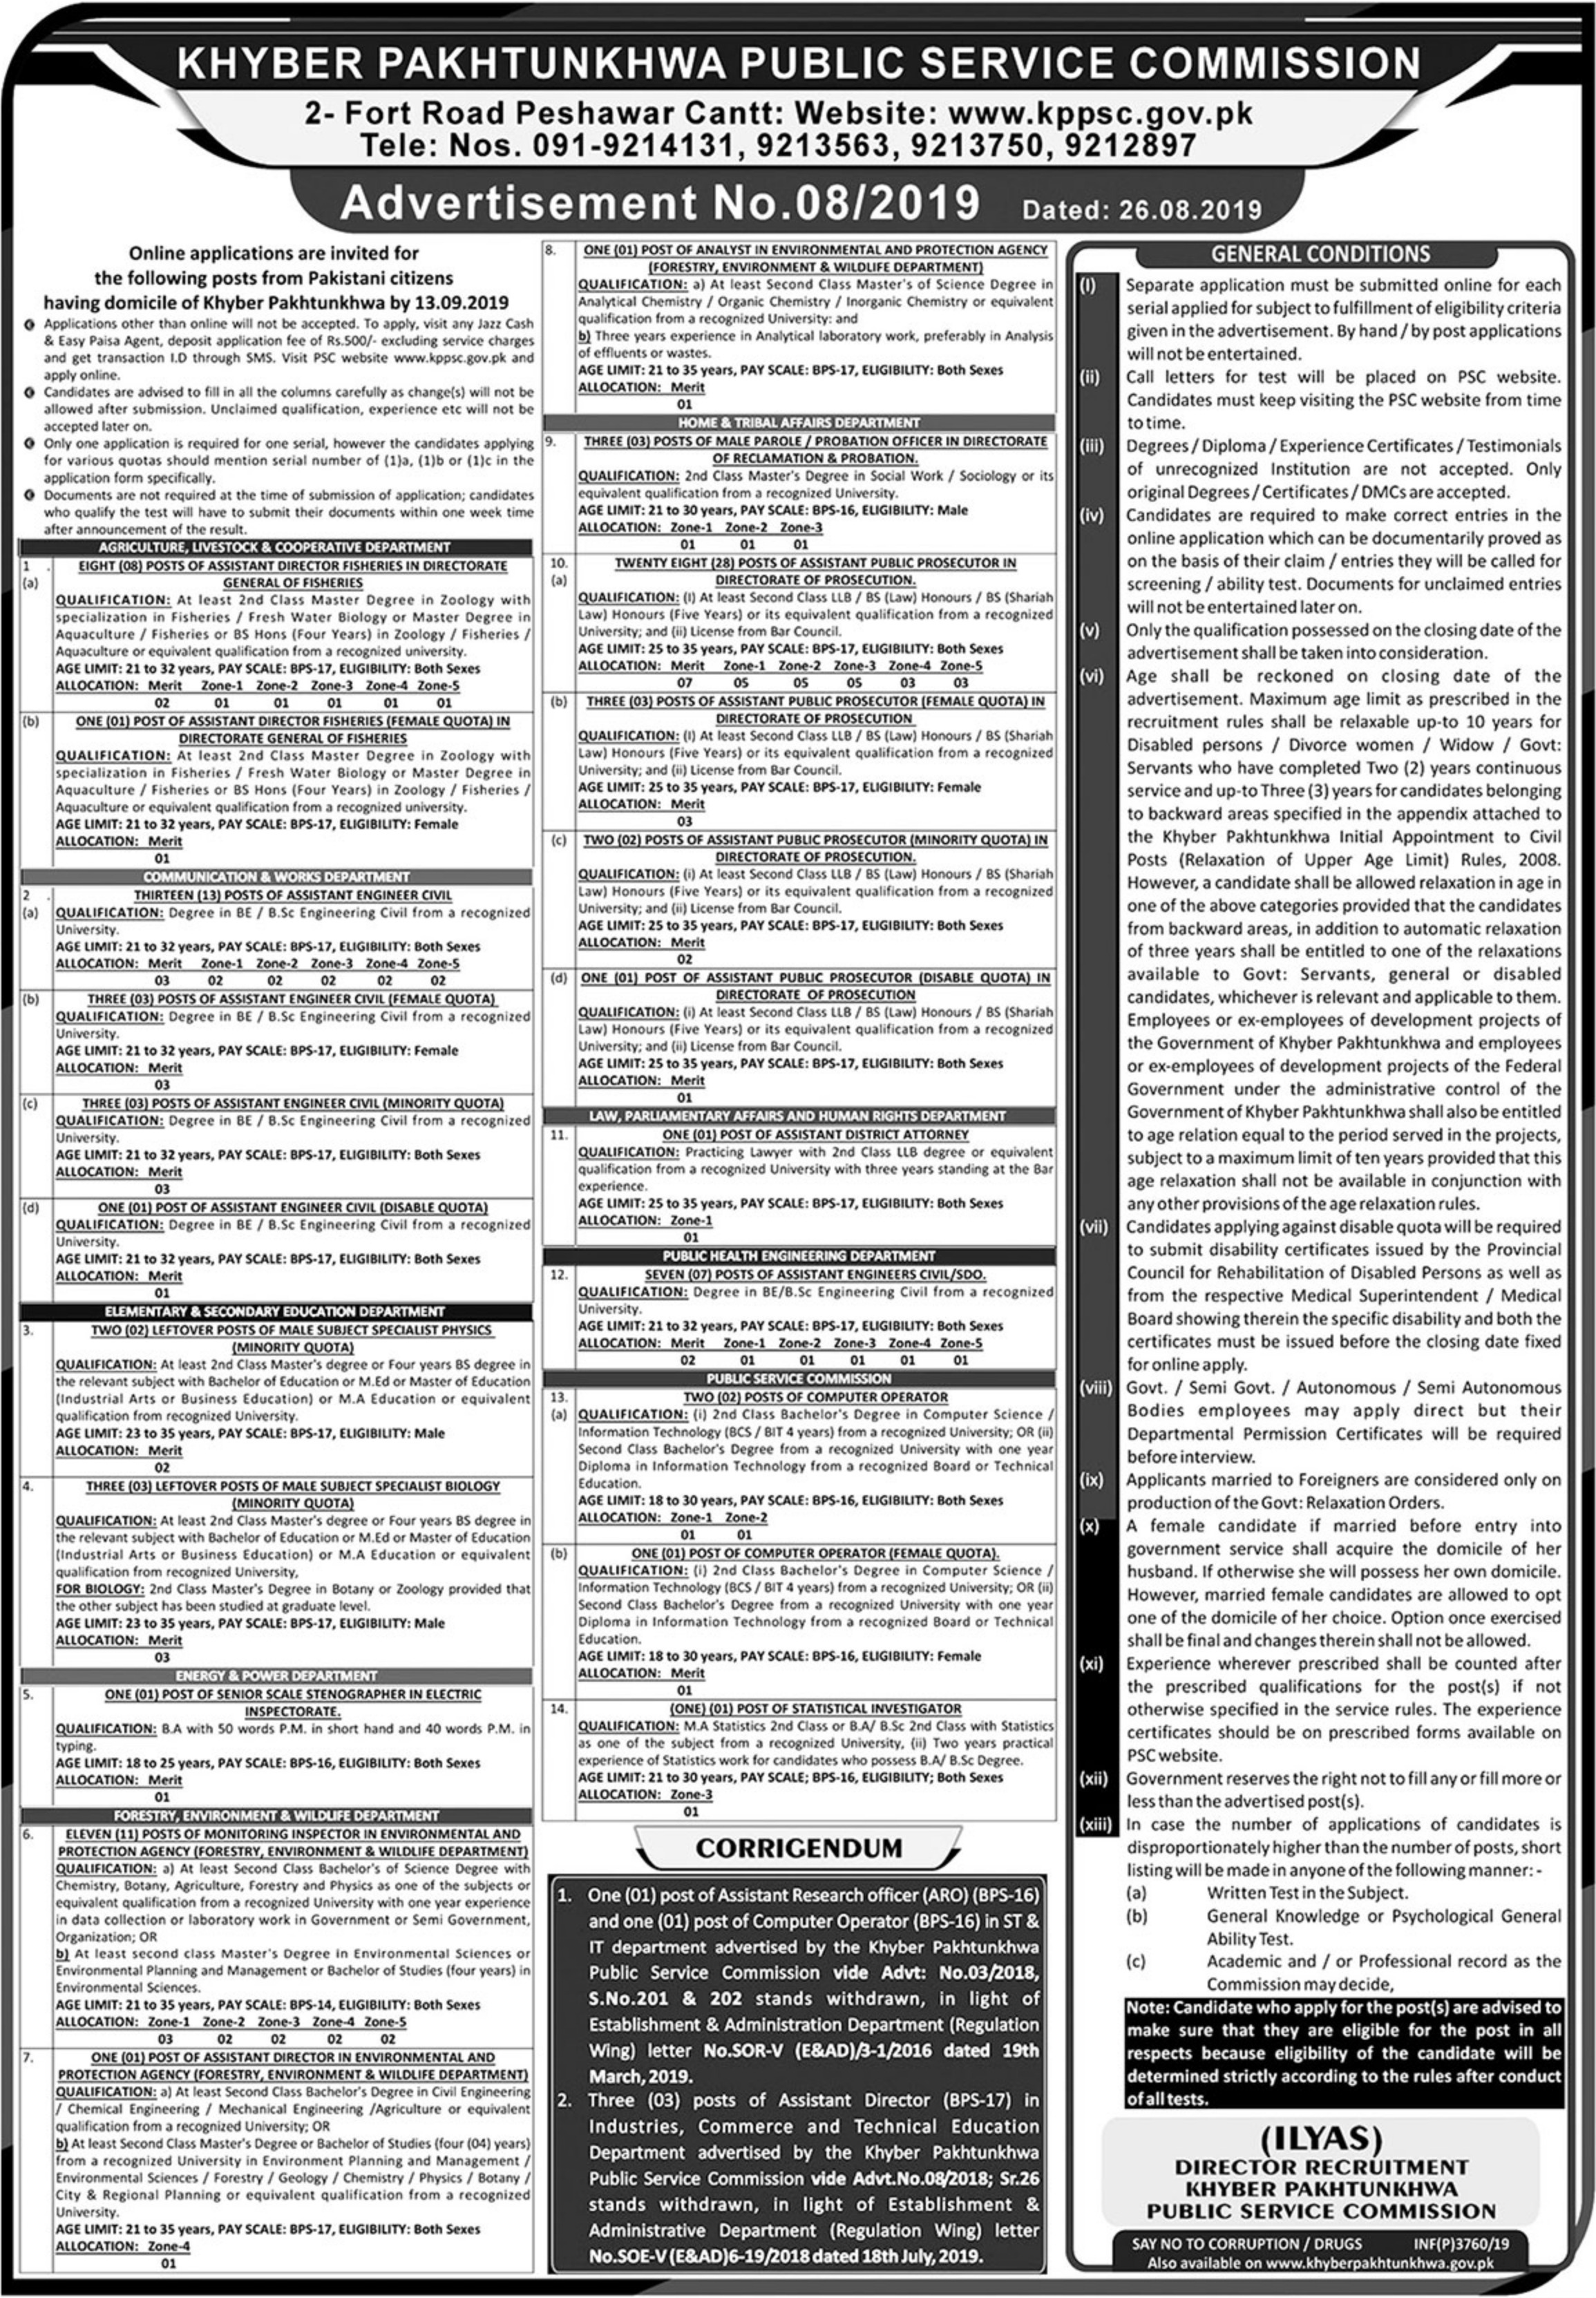 KPPSC Jobs 2019 Apply Online Khyber Pakhtunkhwa Public Service Commission